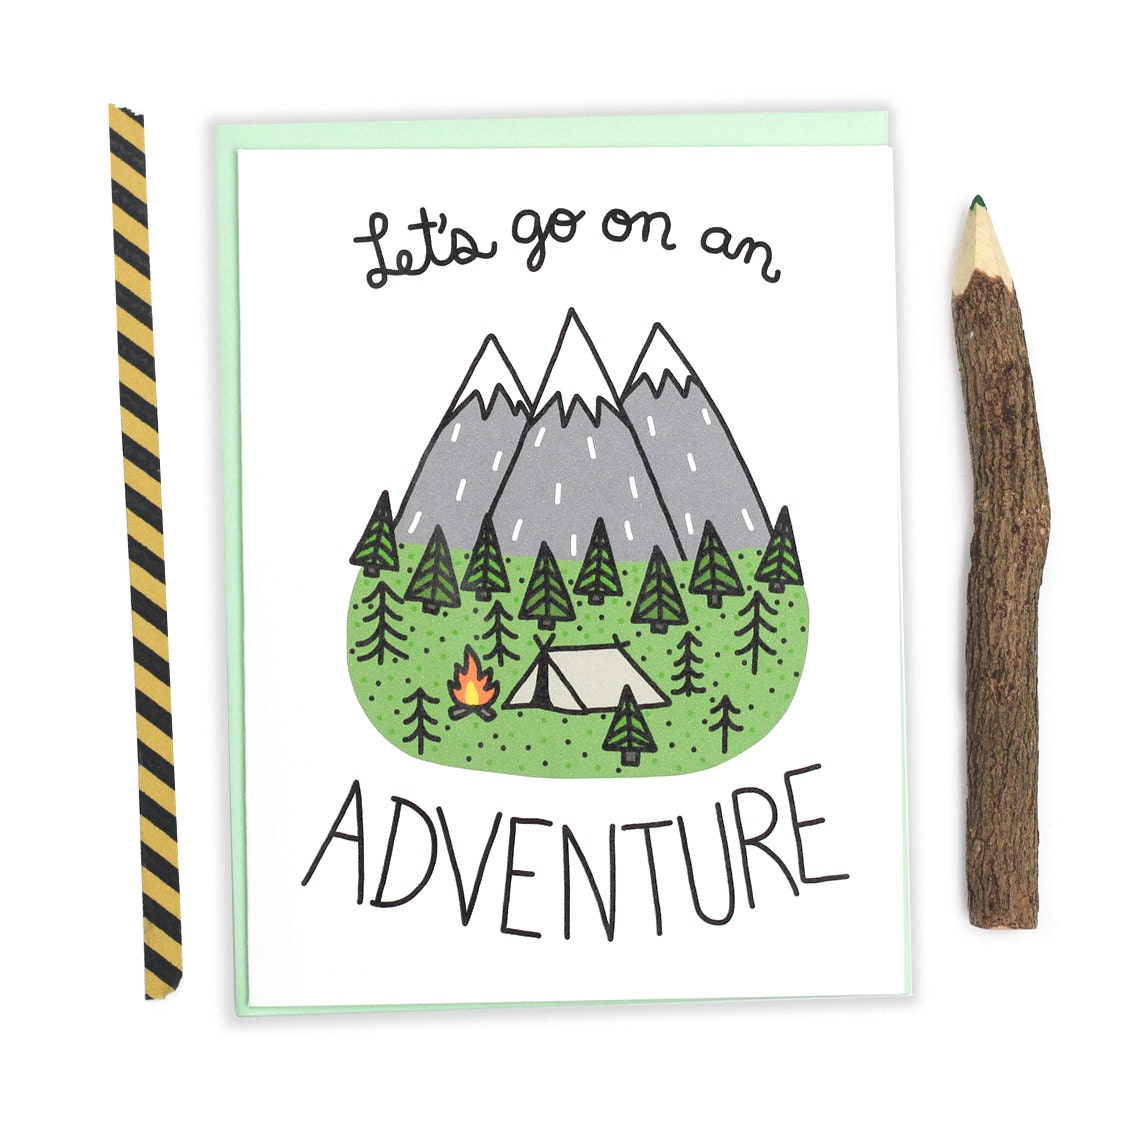 Adventure birthday card outdoorsy love card love vacation zoom kristyandbryce Image collections